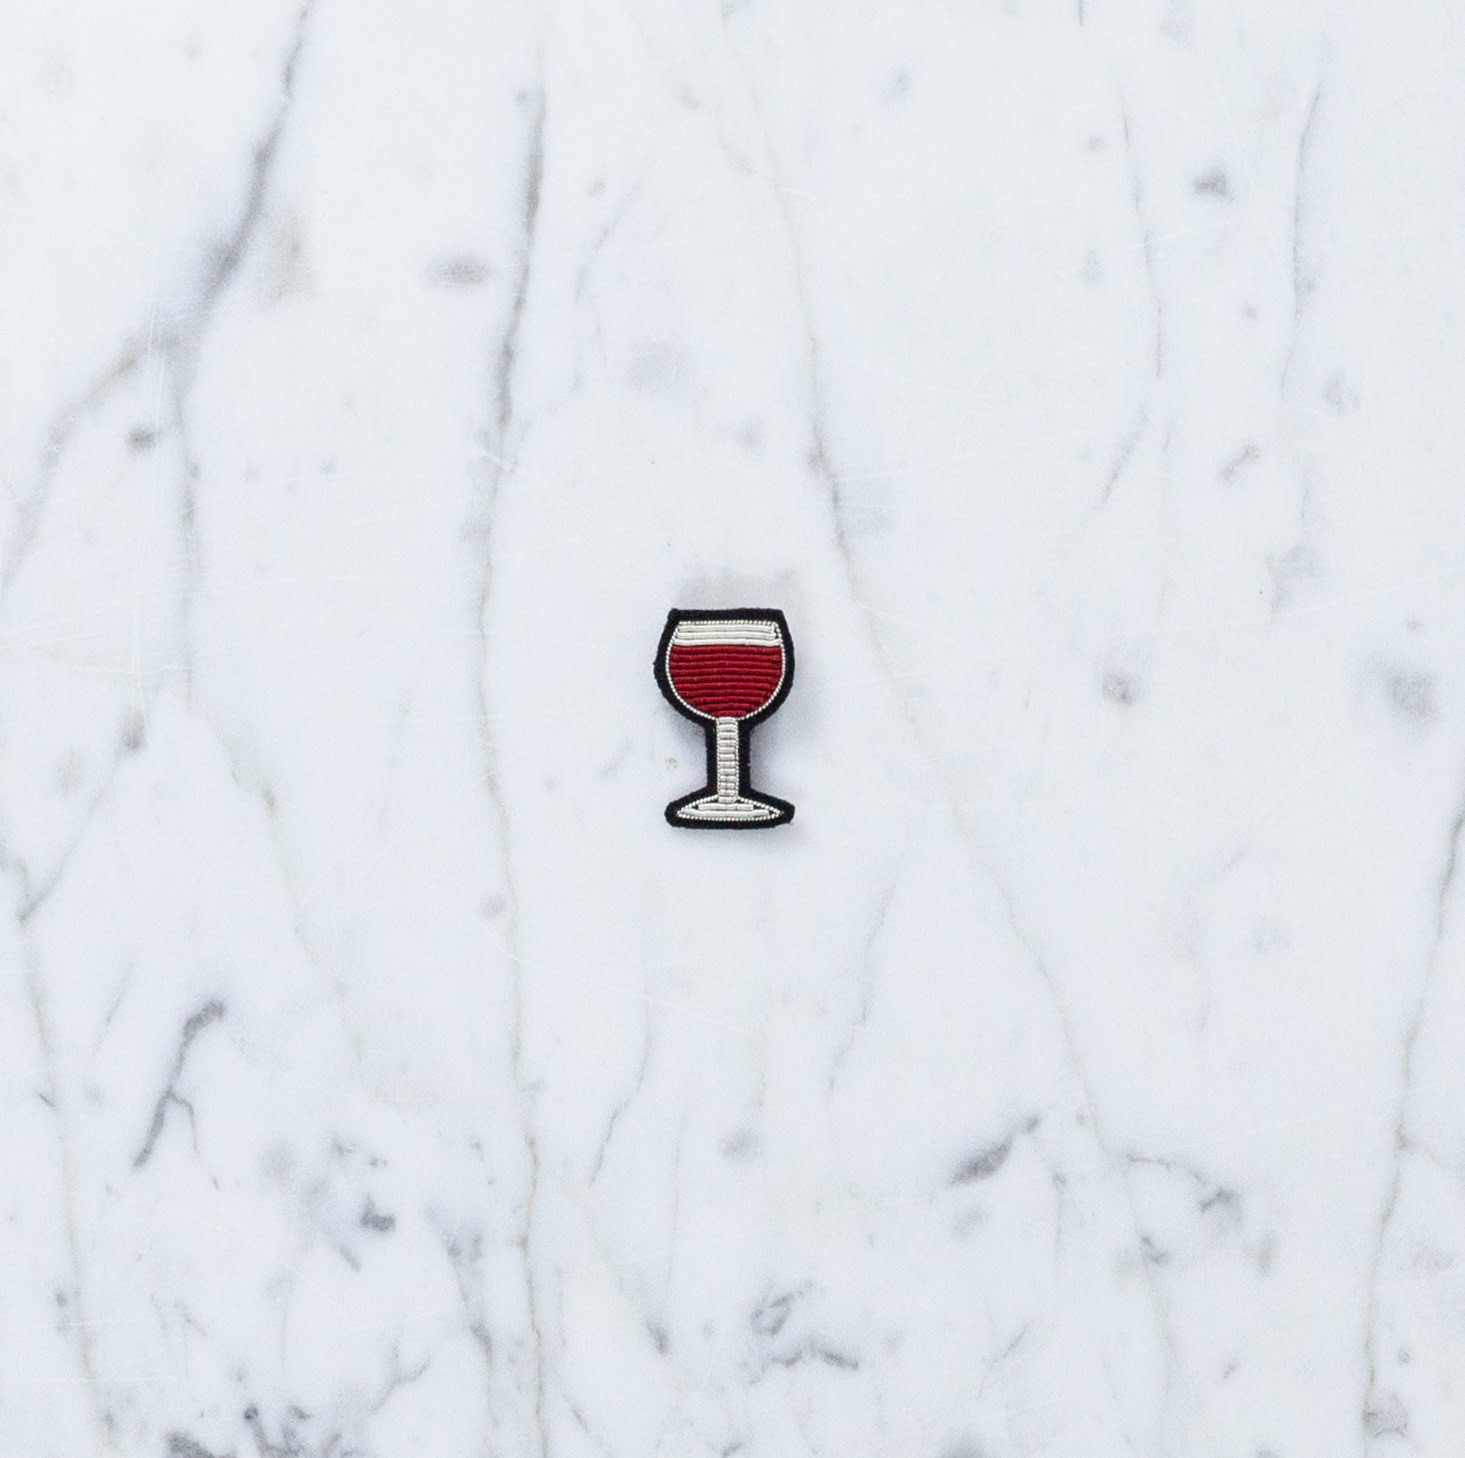 Hand Embroidered Macon & Lesquoy Pin - Glass of Red Wine